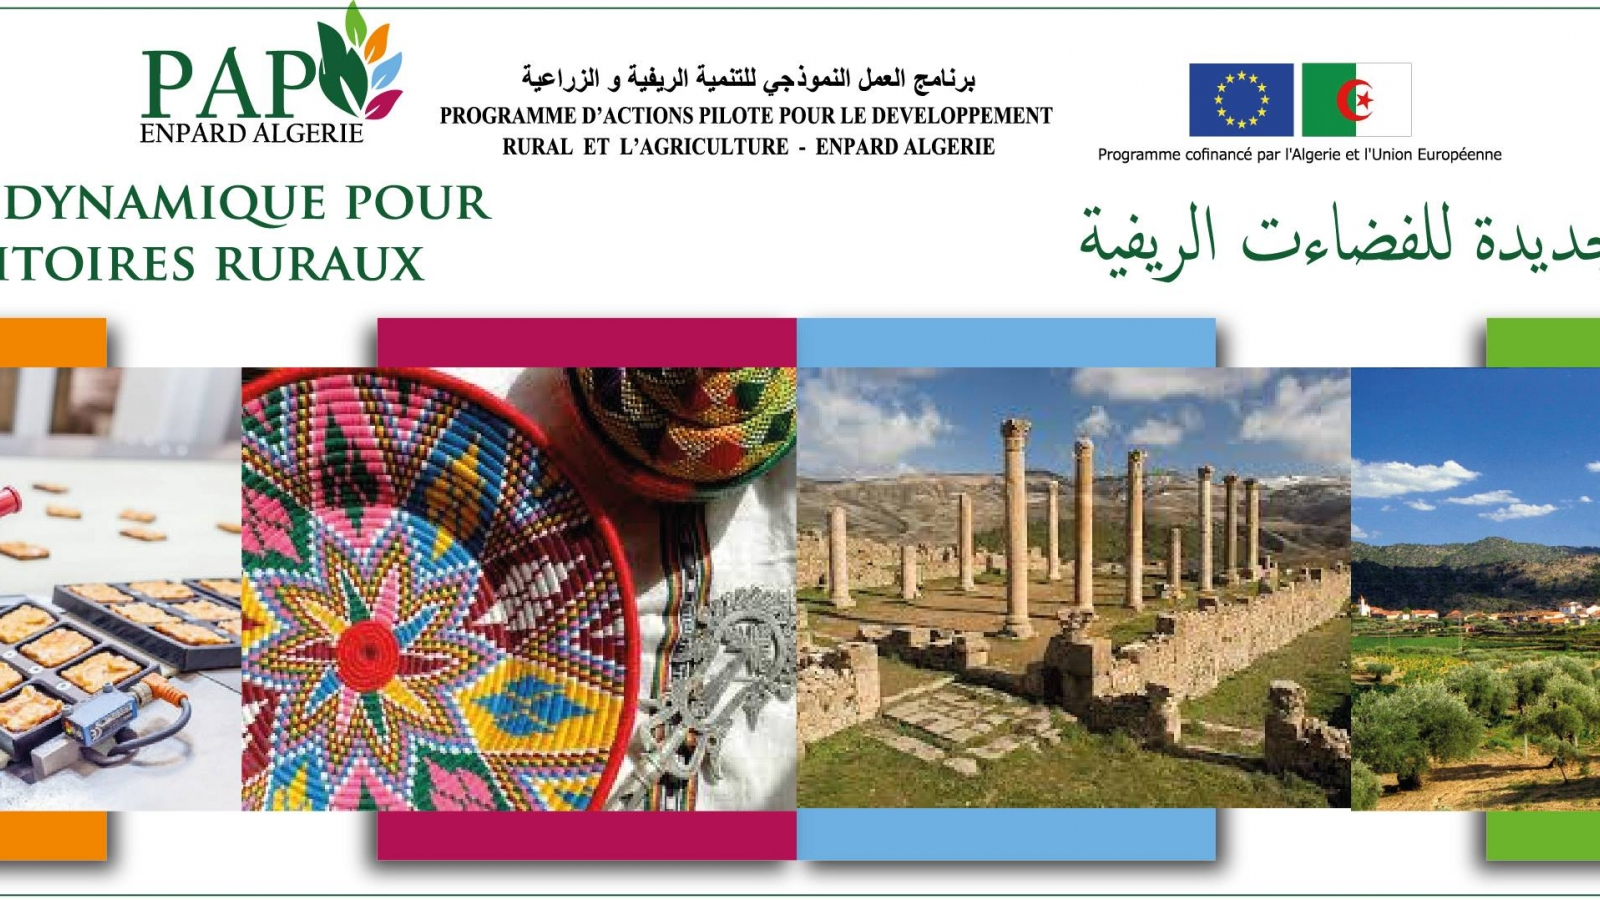 EU helps promote rural development of Algerian oases